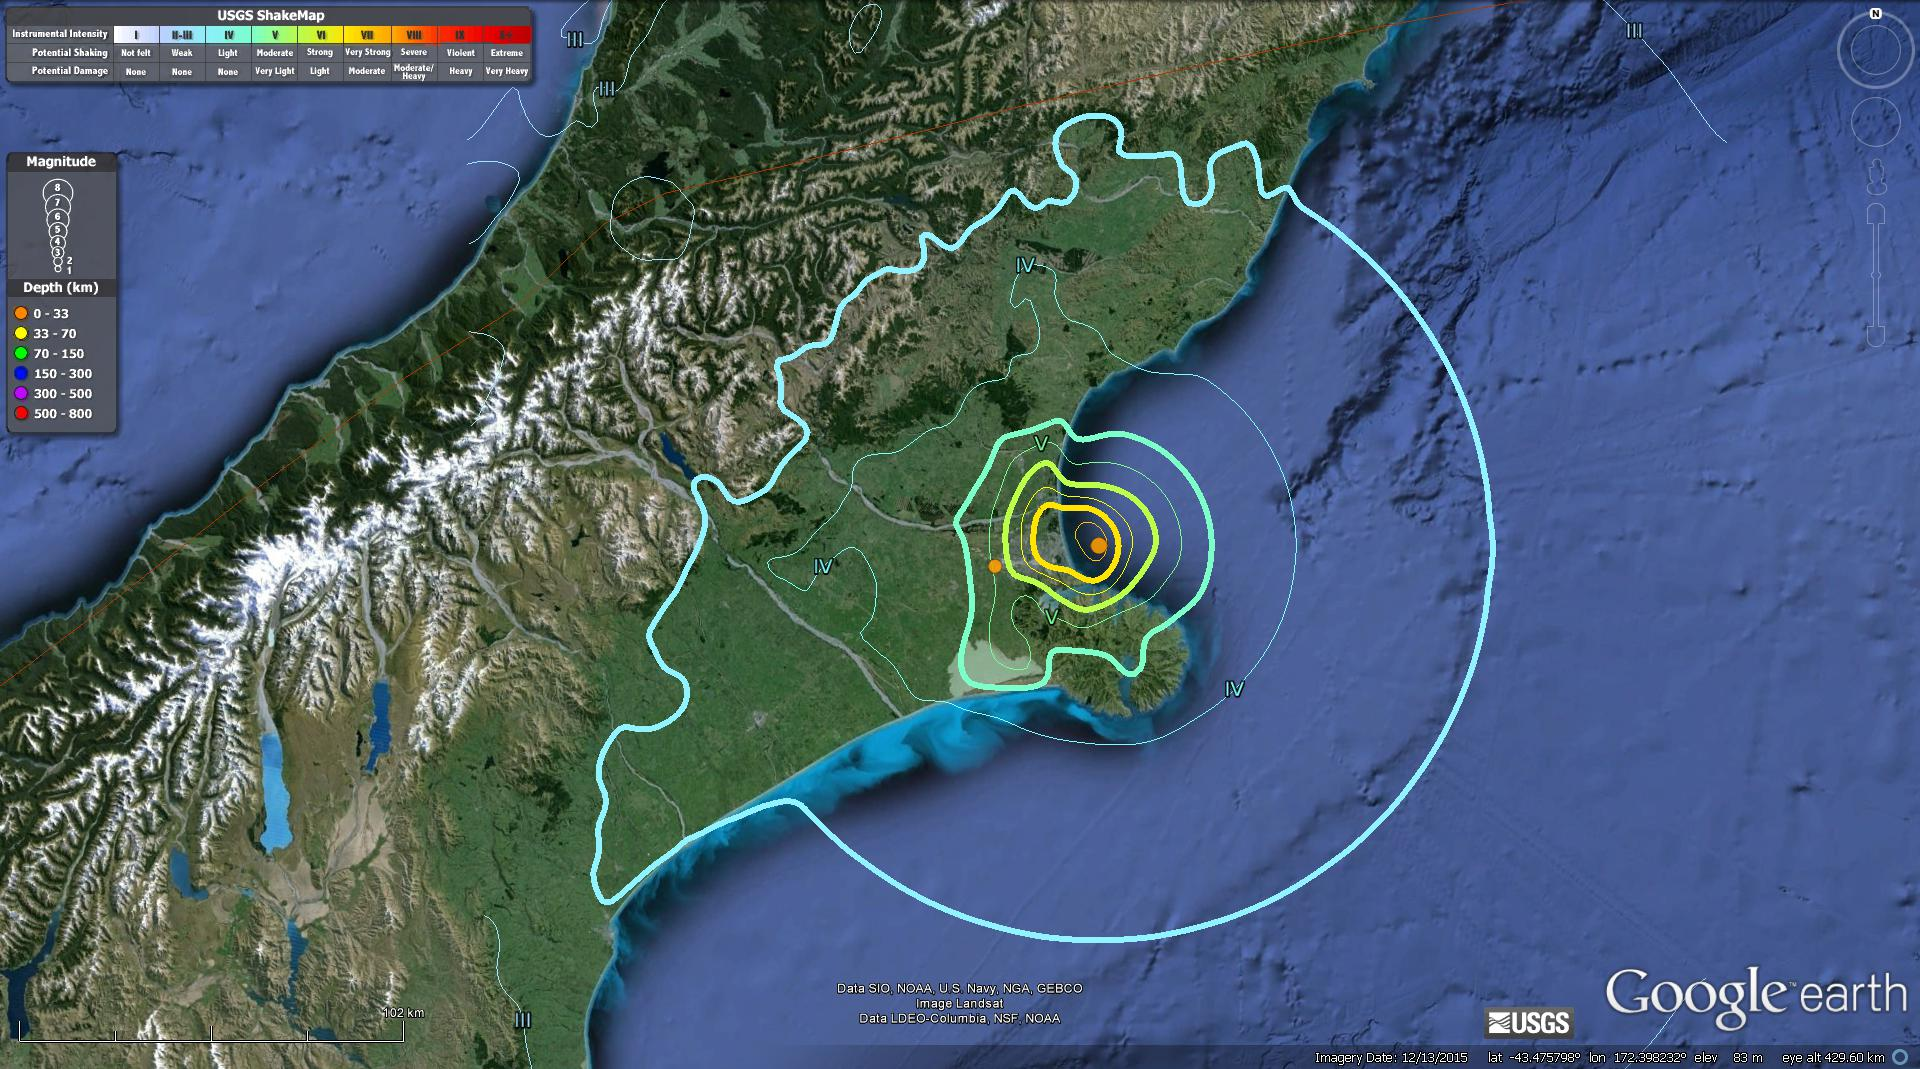 Here Is A Map That Shows The Modified Mercalli Intensity Mmi Contours For This Earthquake The Mmi Is A Qualitative Measure Of Shaking Intensity